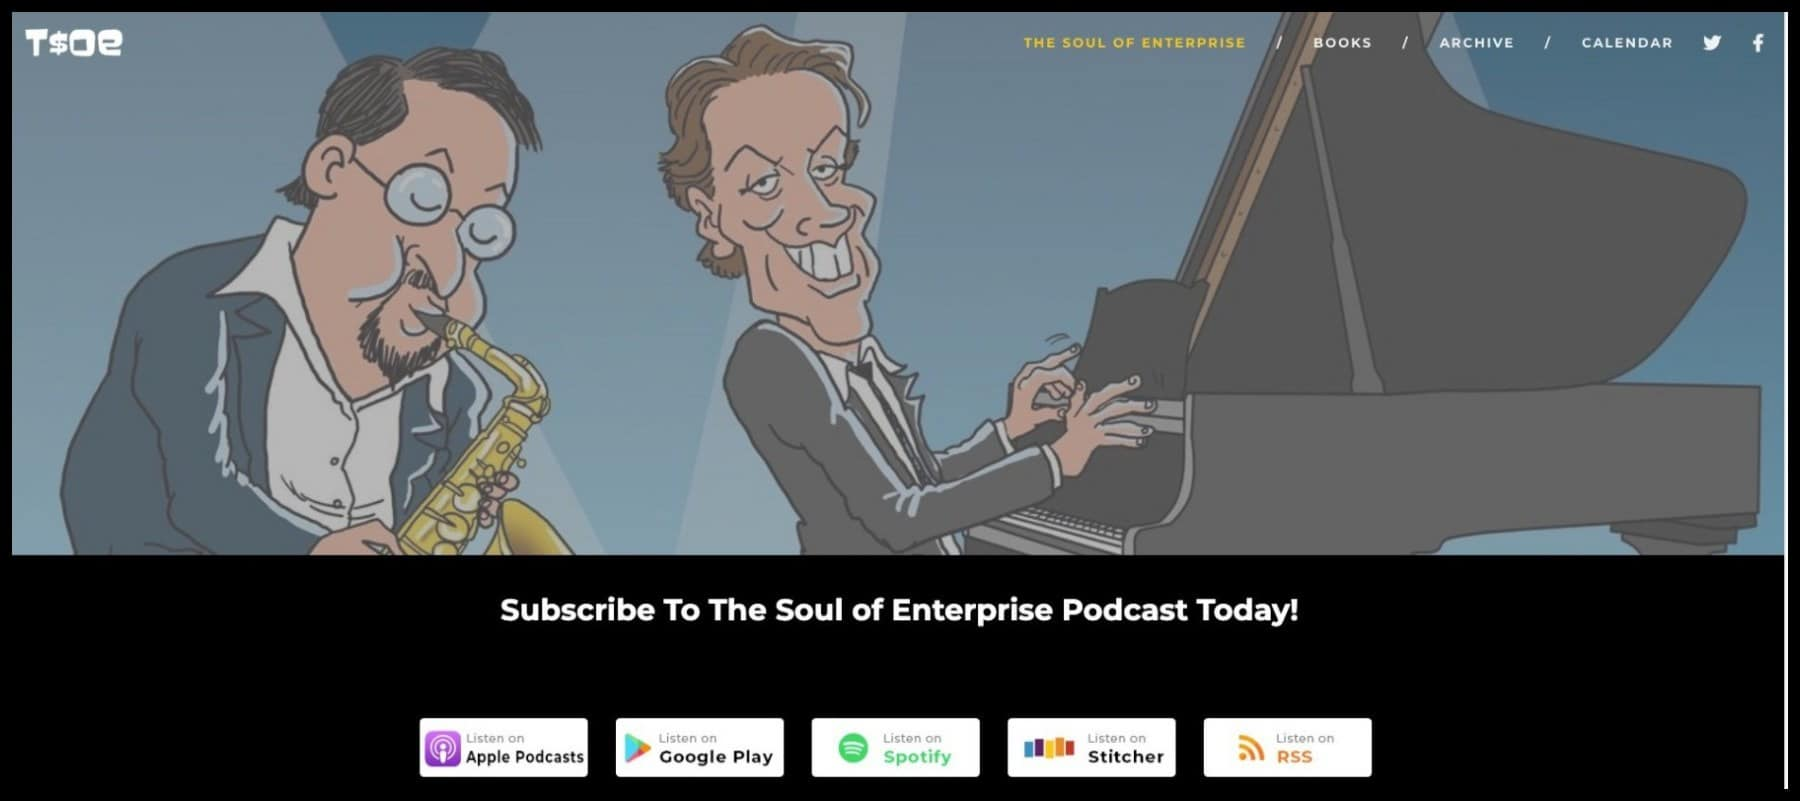 soul of enterprise accounting news accounting podcasts